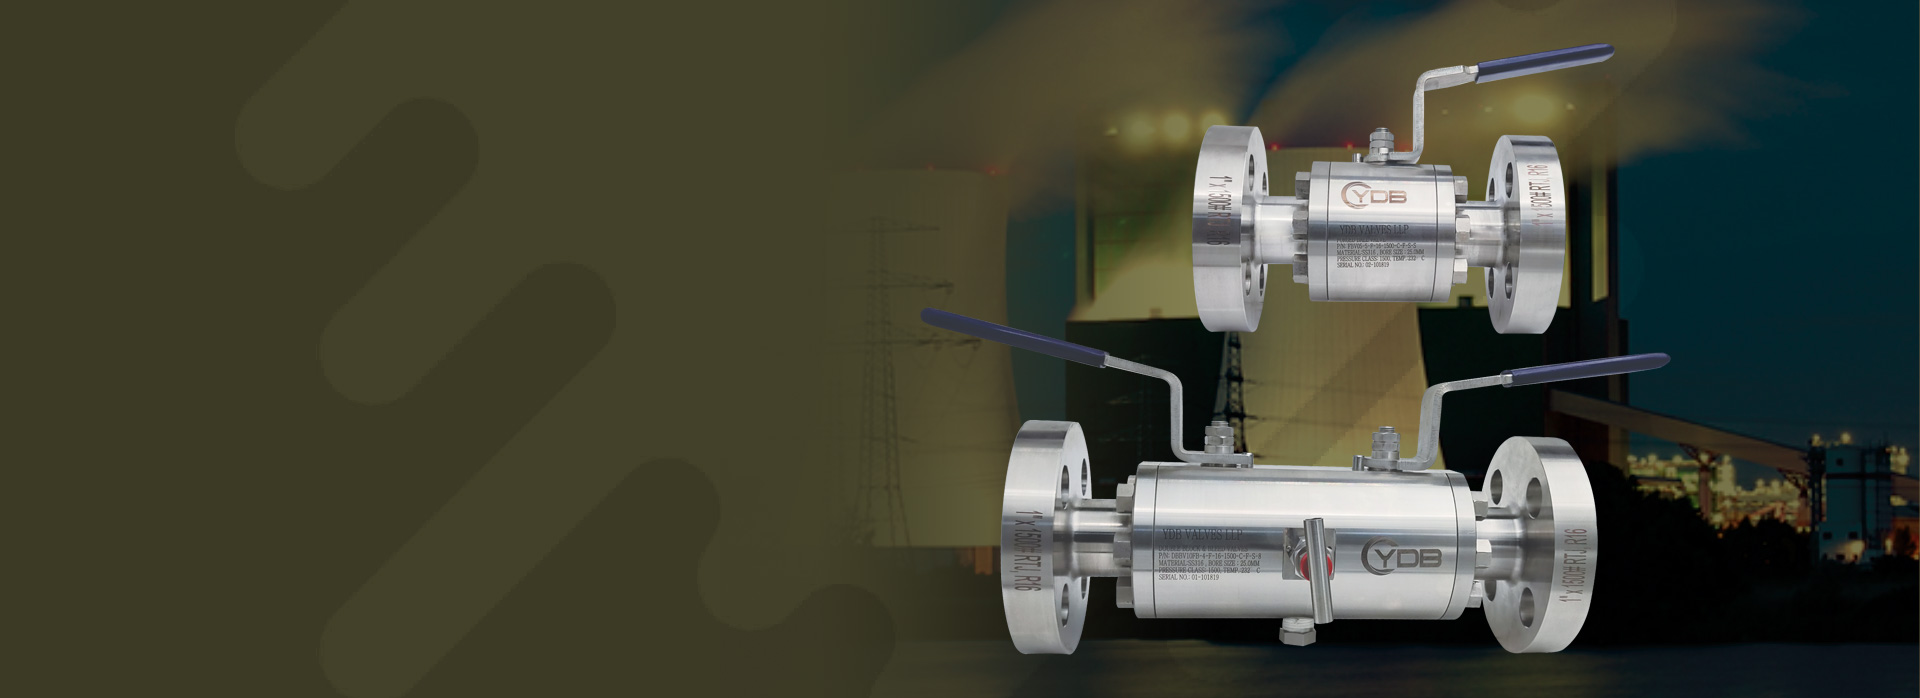 Forged flanged end ball valves manufactured by YDB Valves LLP